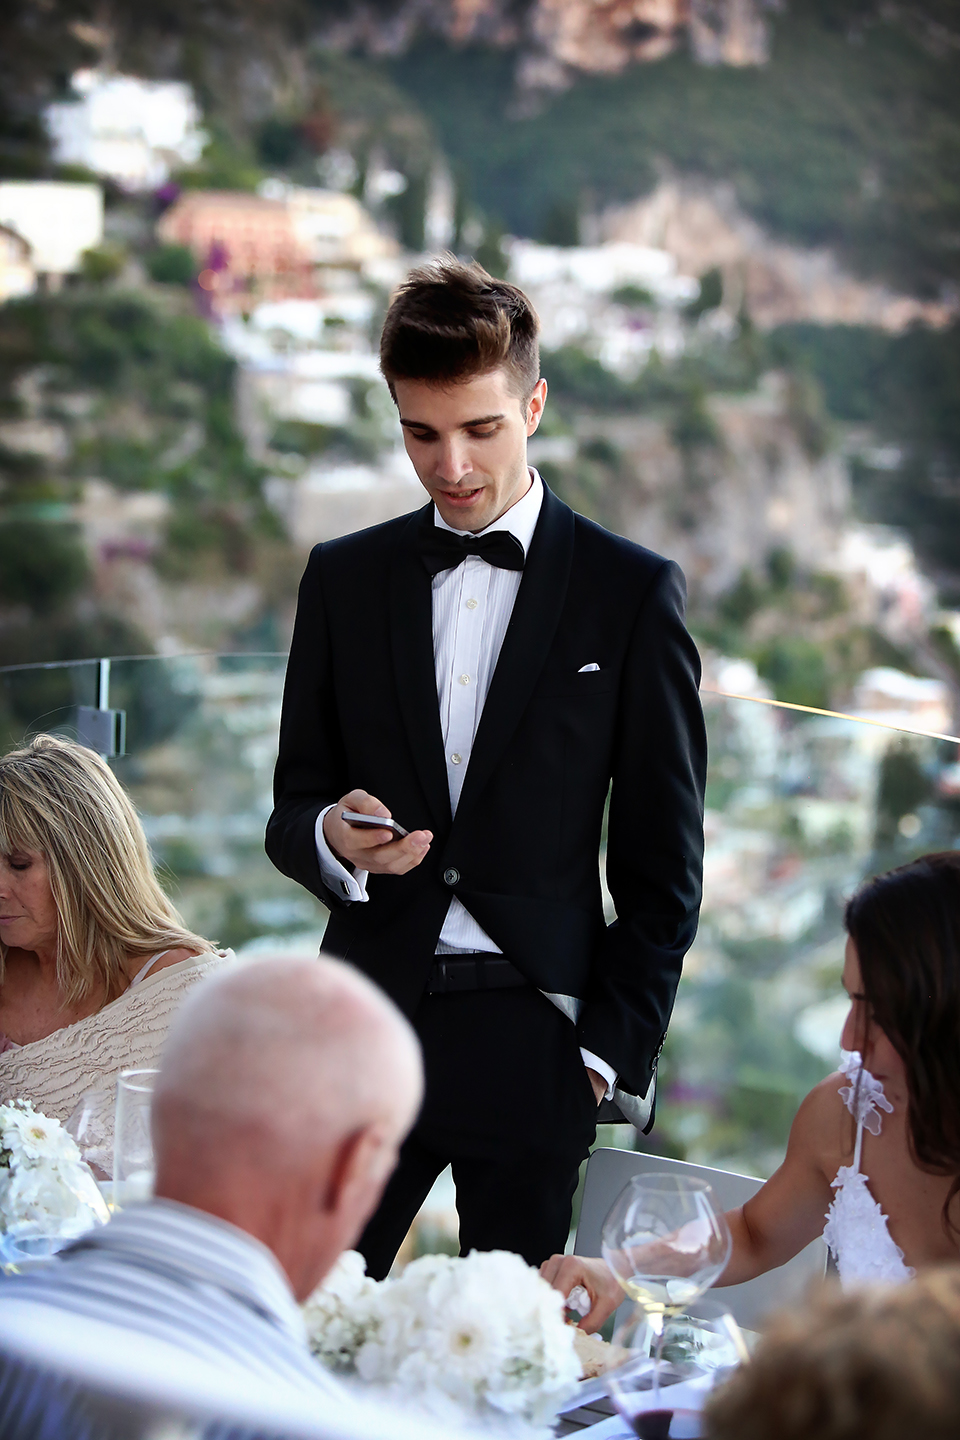 positano-weddin-photographers-italy-wedding-photographers-destination-wedding-photographers-estilo-best-wedding-photographers-in-the-world-casper-bosman-wedding-gown-wedding-style-stylish-modern-wedding-photography-073.jpg